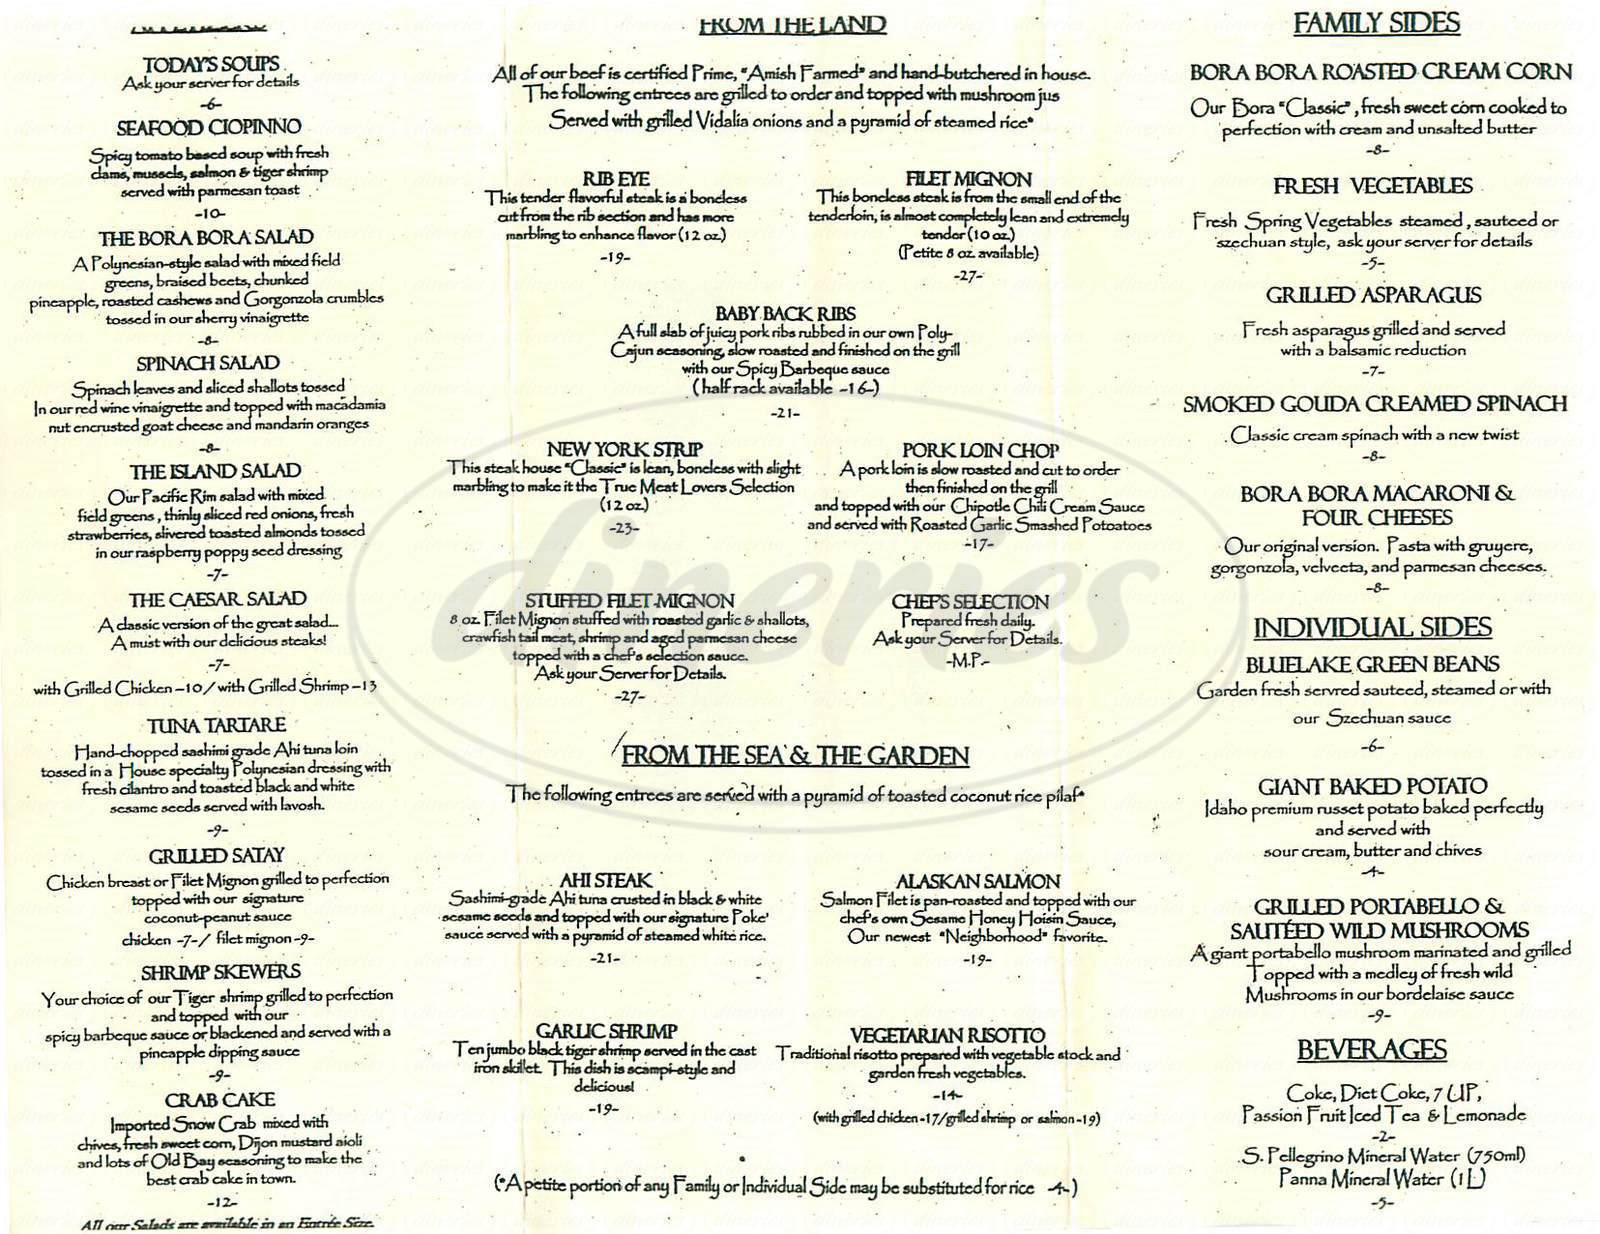 menu for Bora Bora